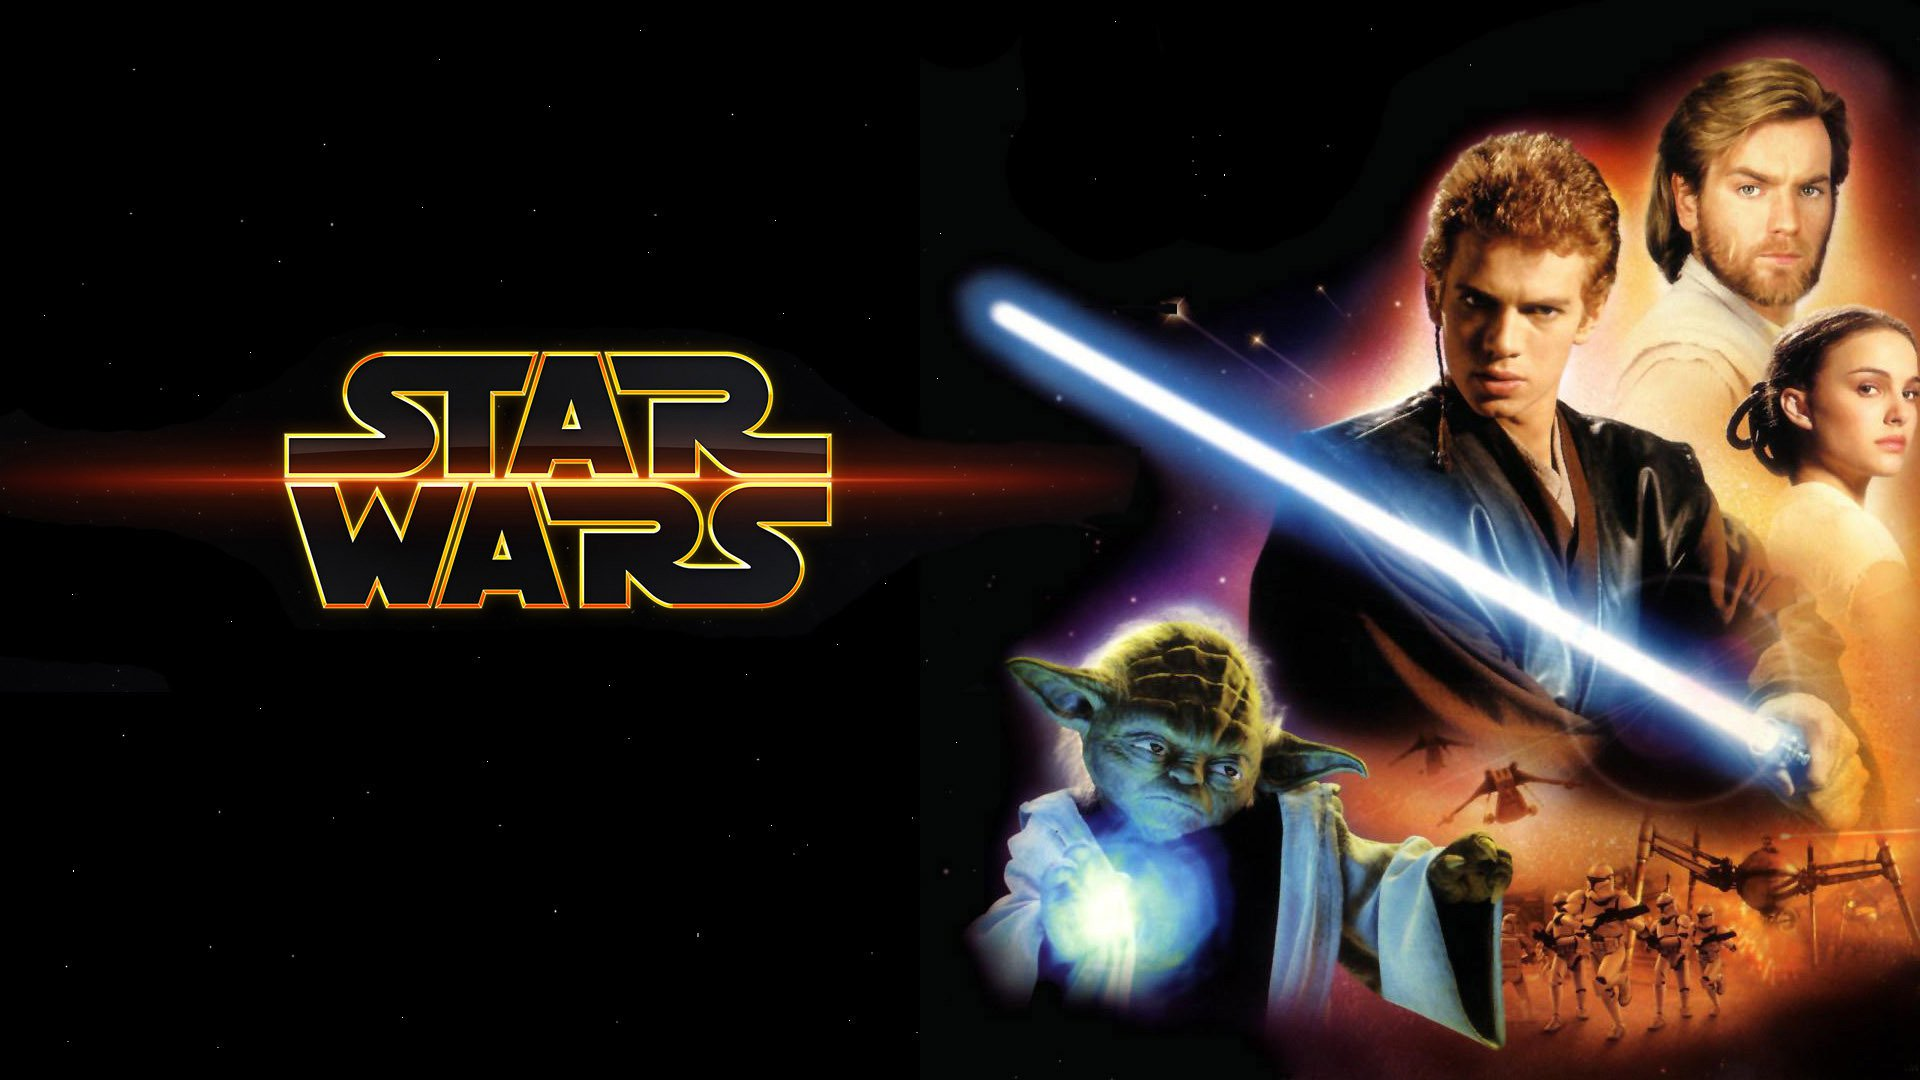 star wars episode ii: attack of the clones full hd wallpaper and